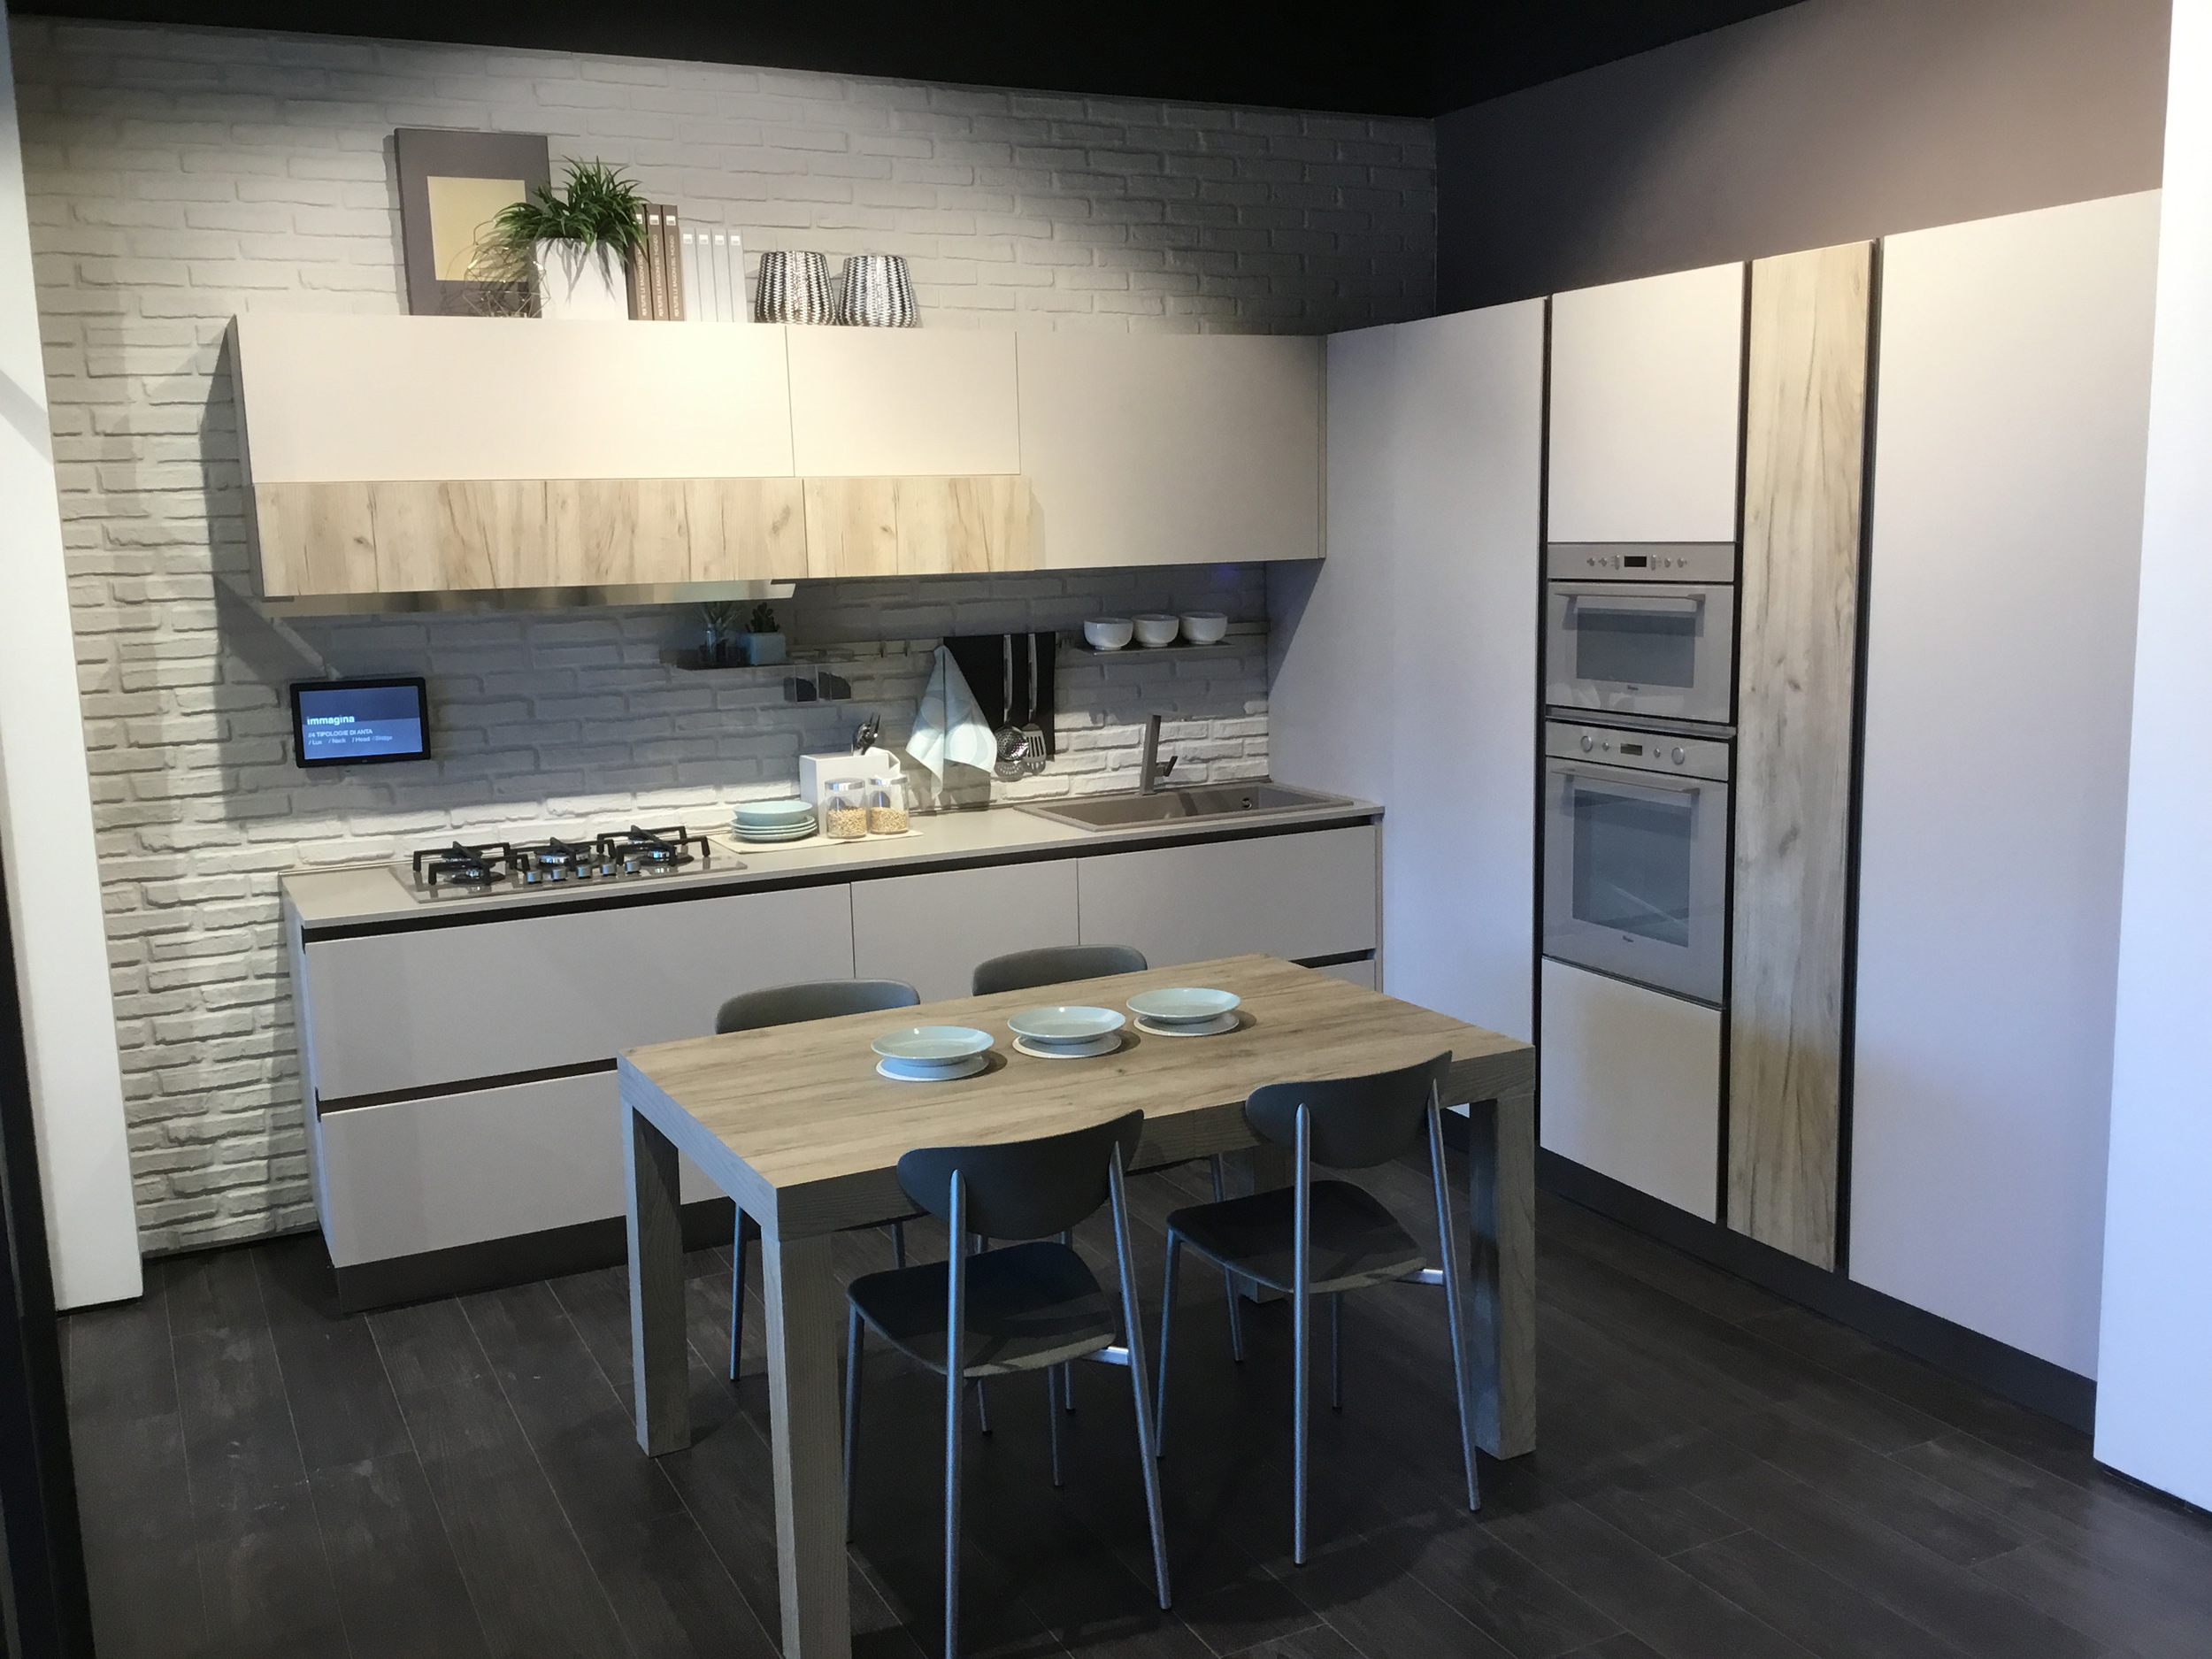 Gruppo Lube inaugurates a new important Store in Rome - Cucine Lube